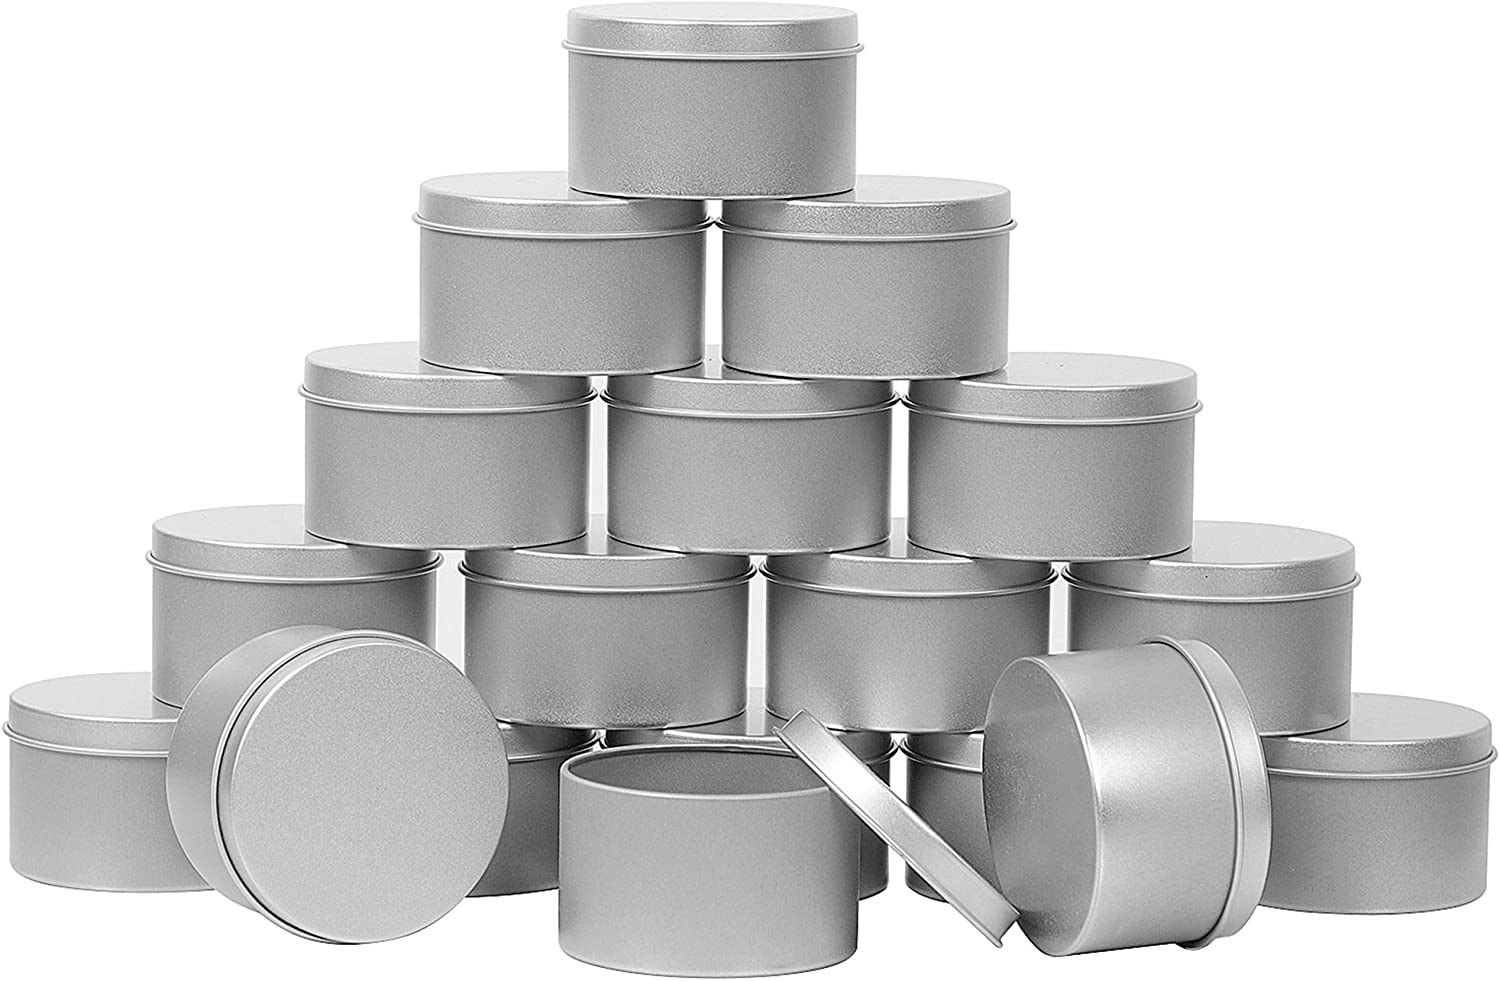 ZOENHOU 60 Pack 4 Oz Candle Tins, Round Empty Metal Tins with Lids, Portable Metal Storage Tin Jars, Refillable Spice Containers for Gifts, Candle Making, Party Favors, Balms and Gels